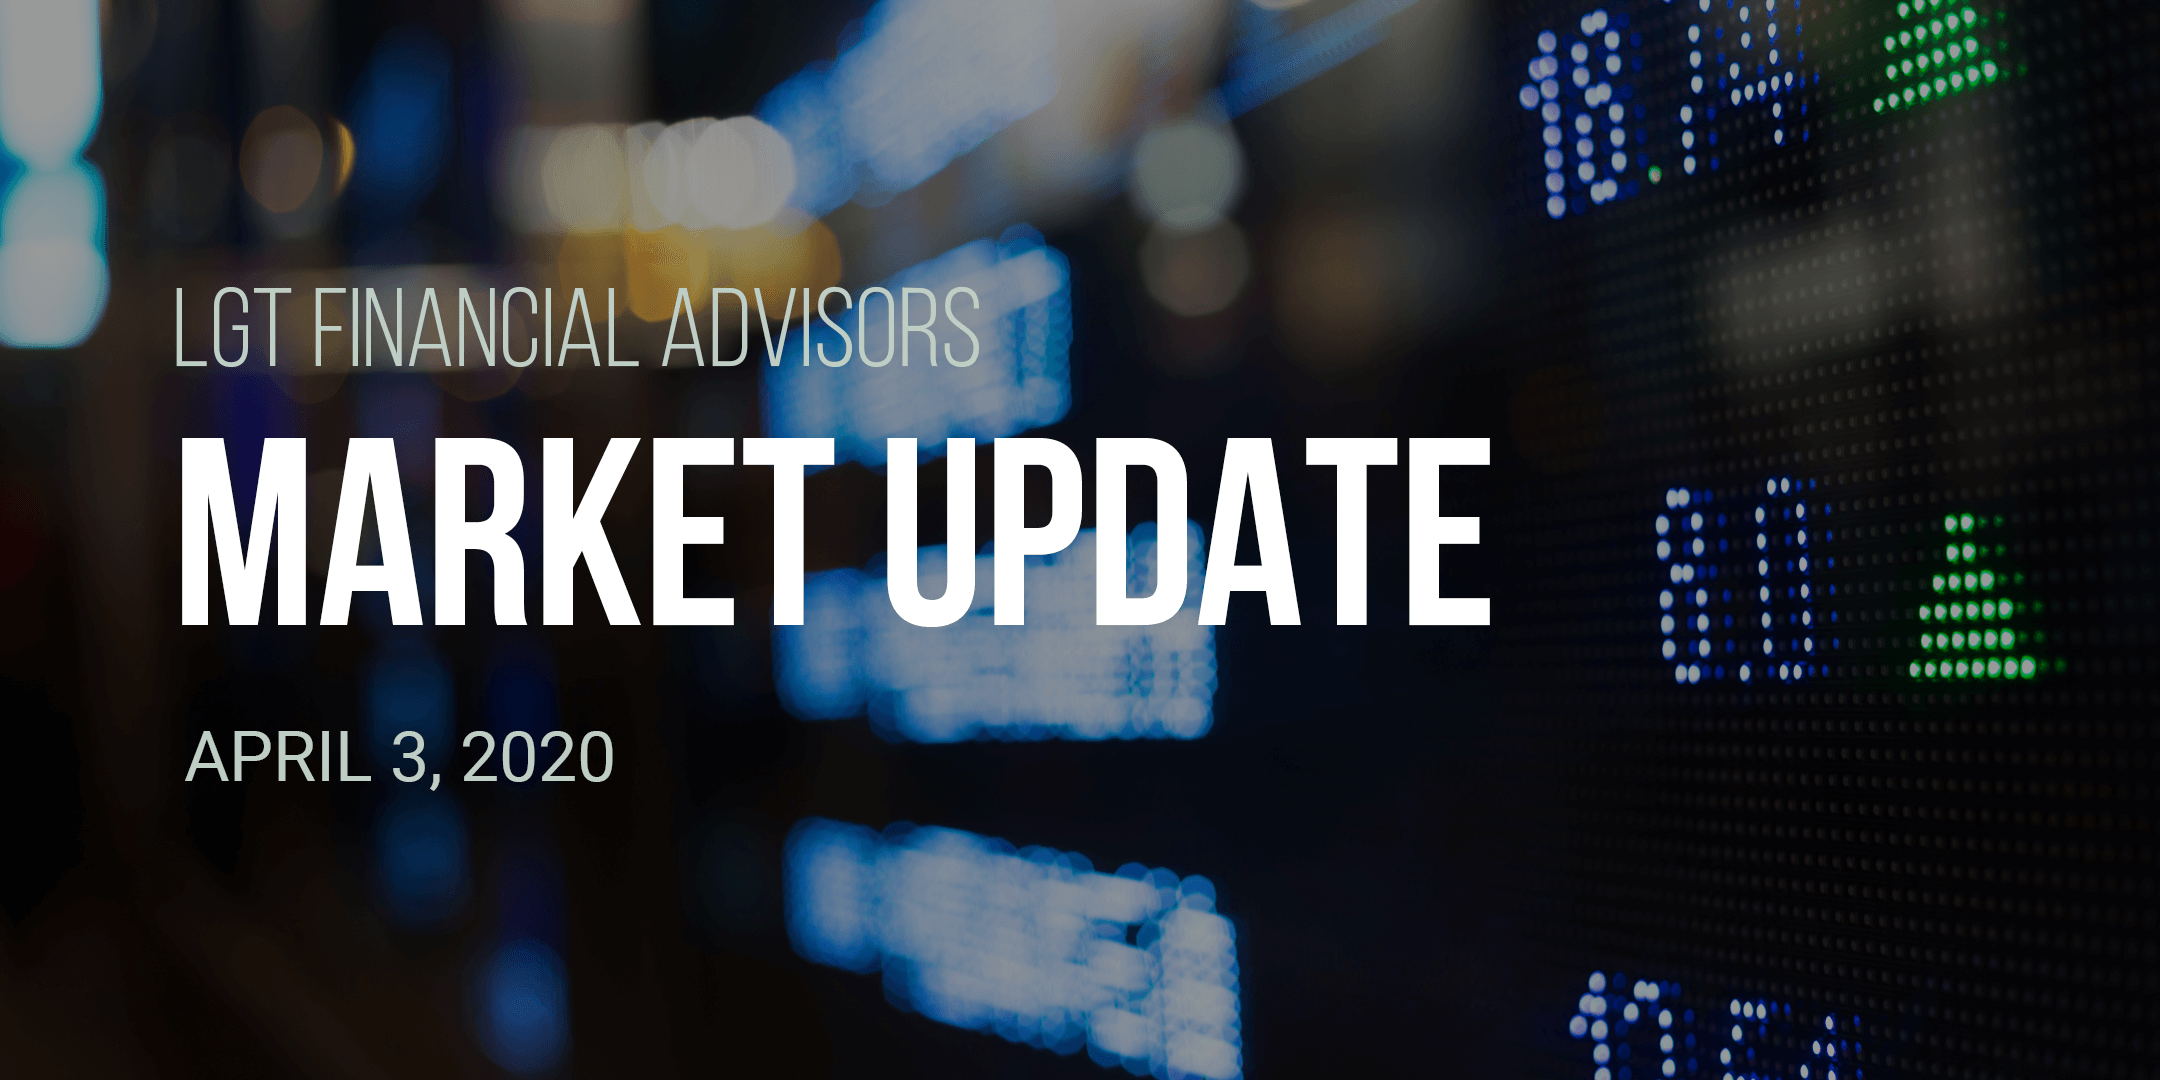 FA Market Update - April 3, 2020